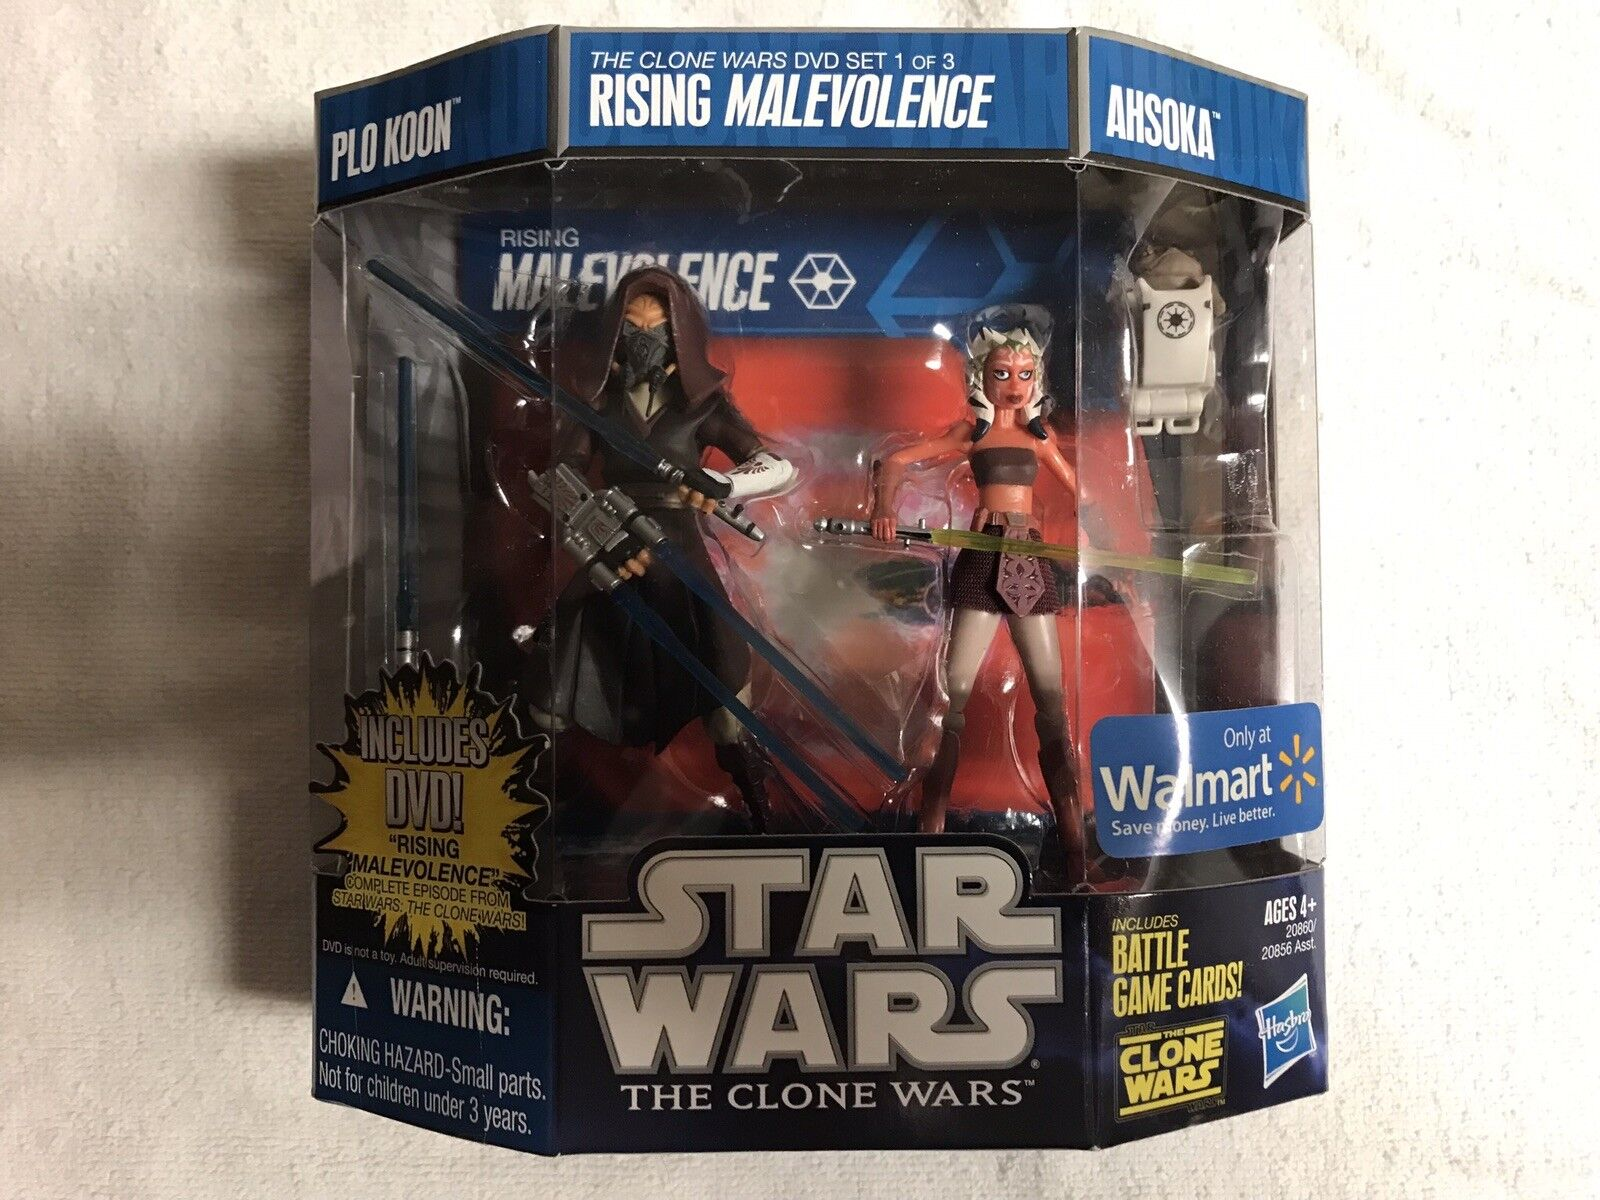 Star Wars The Clone Wars Rising Malevolence Set 1 Of 3